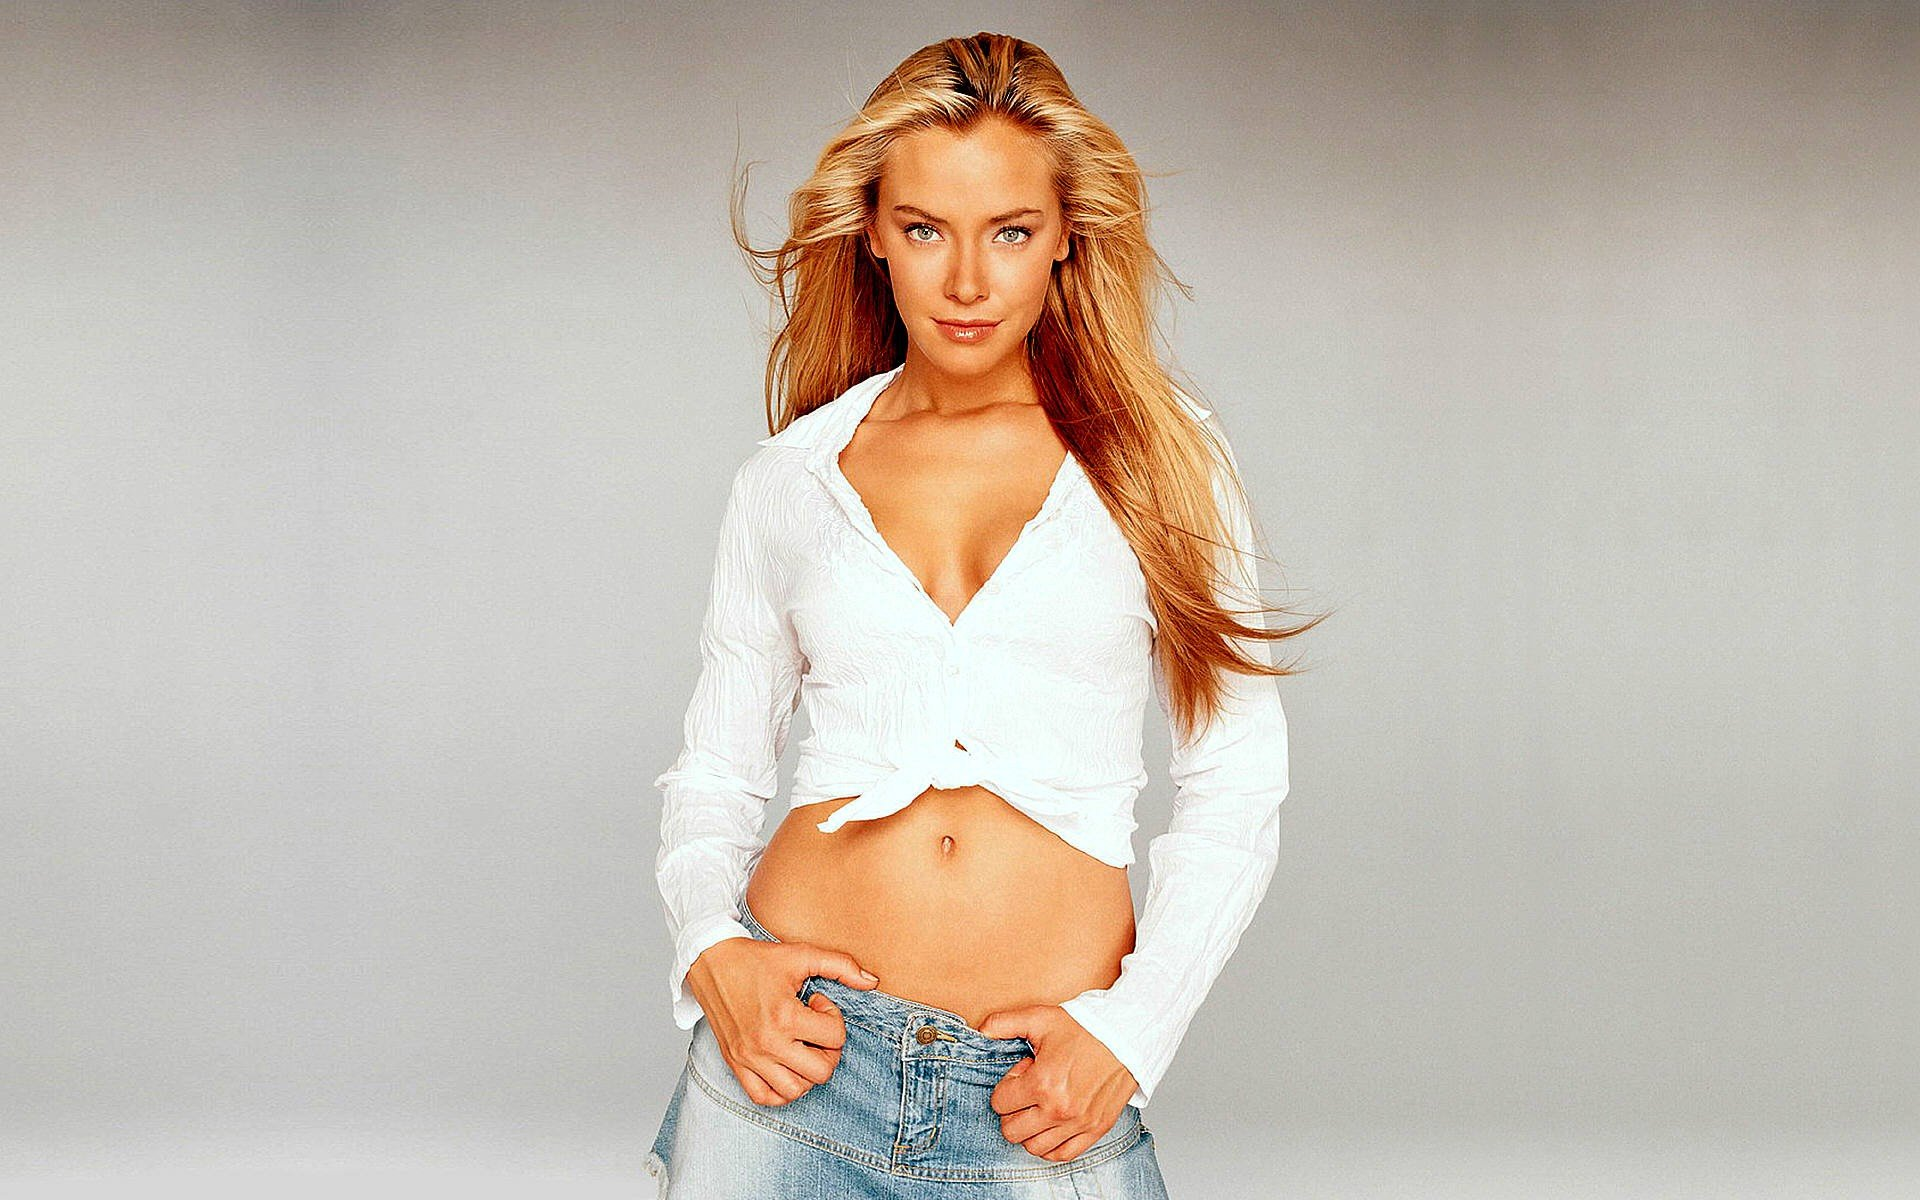 High resolution Kristanna Loken hd 1920x1200 background ID:185644 for desktop